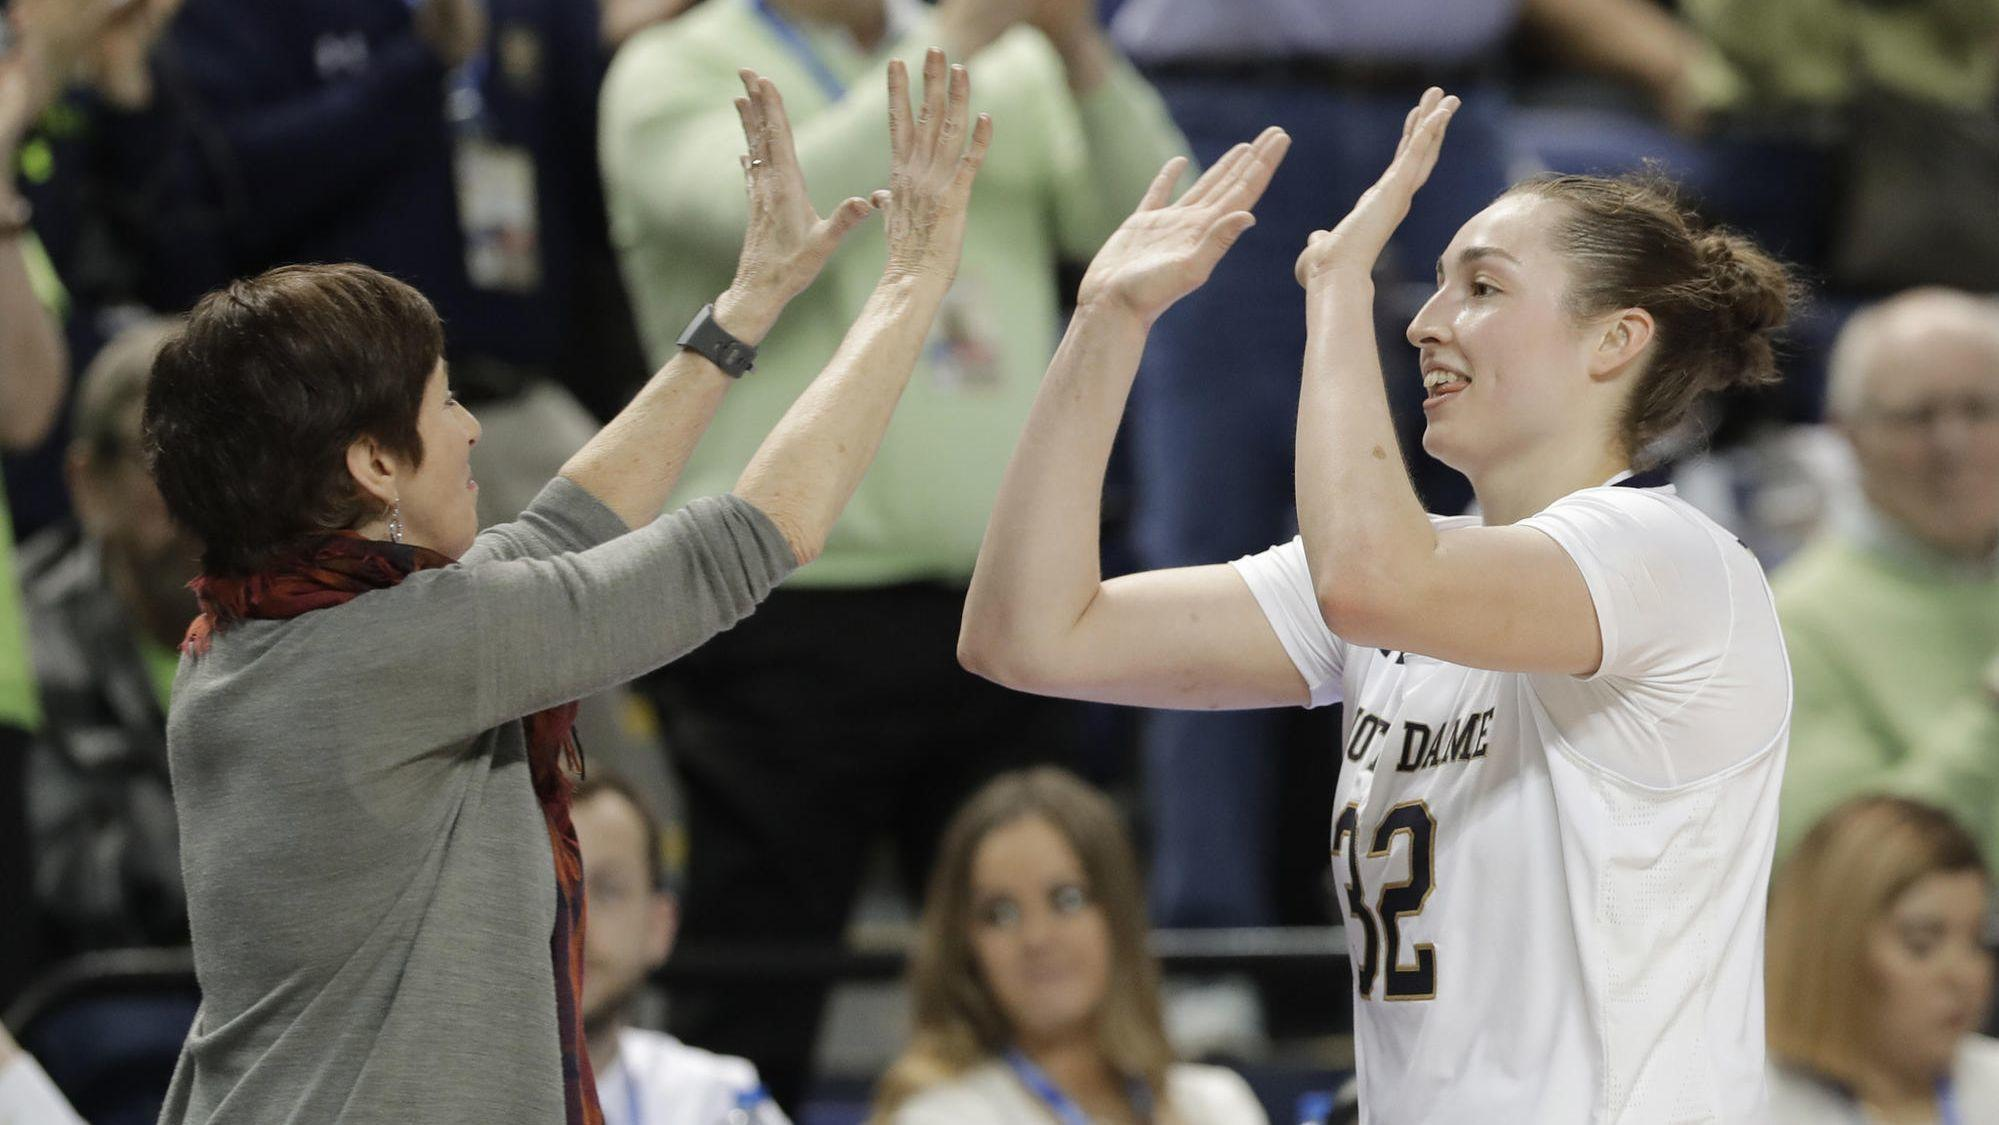 ESPN mistakenly posts NCAA women's bracket hours early — revealing the matchups for No. 1 seed Notre Dame and DePaul